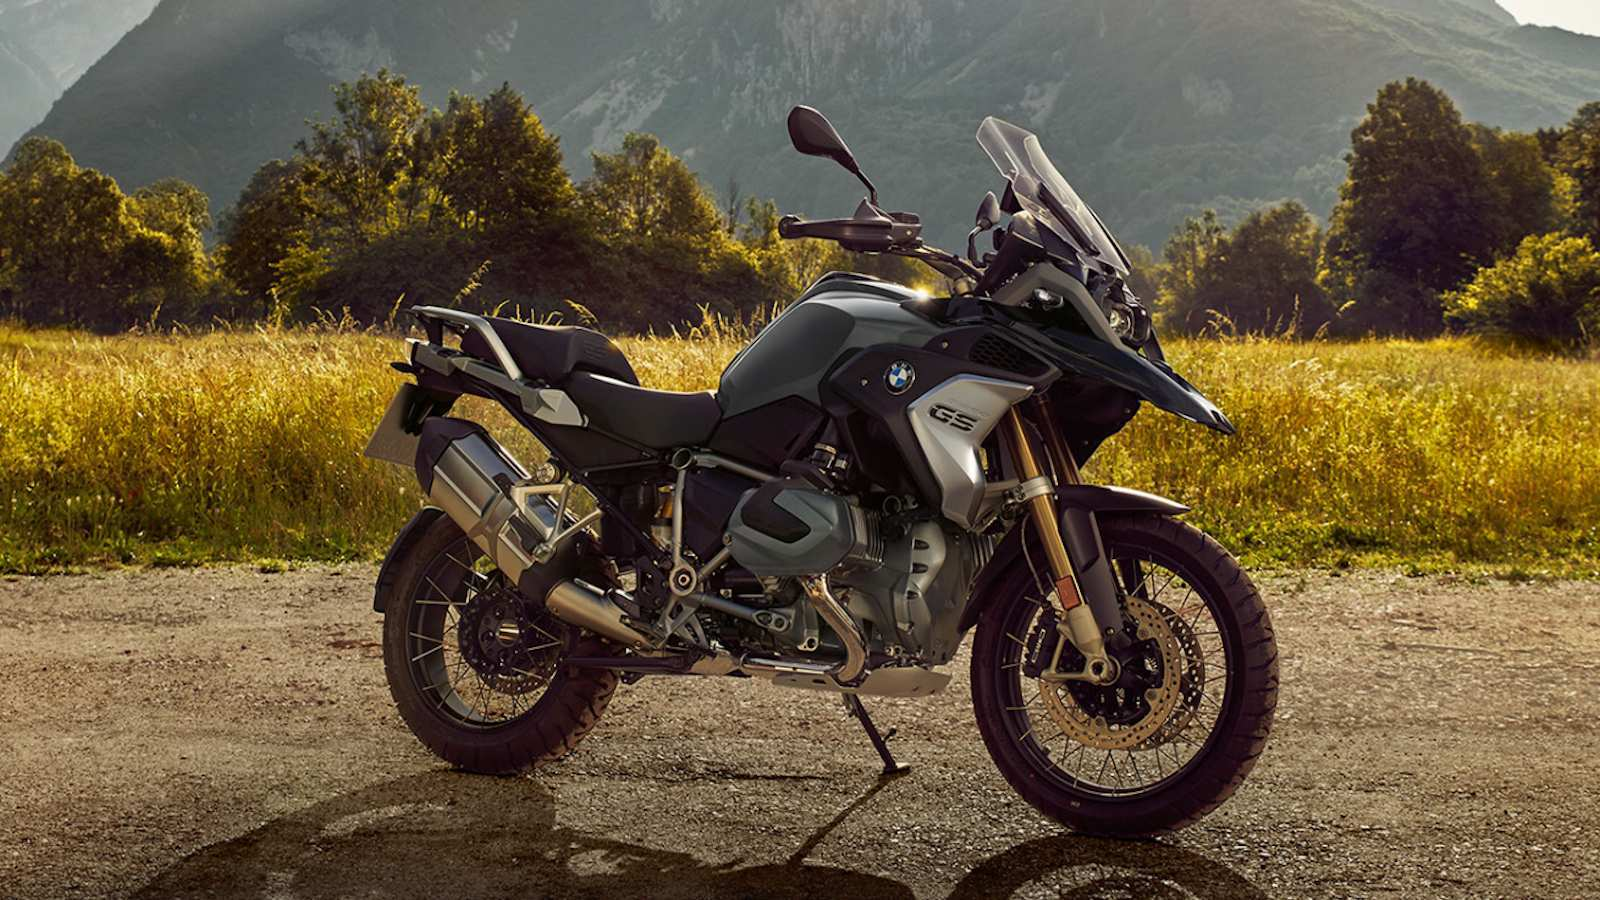 68 All New 2019 Bmw 1250 Gs Research New for 2019 Bmw 1250 Gs